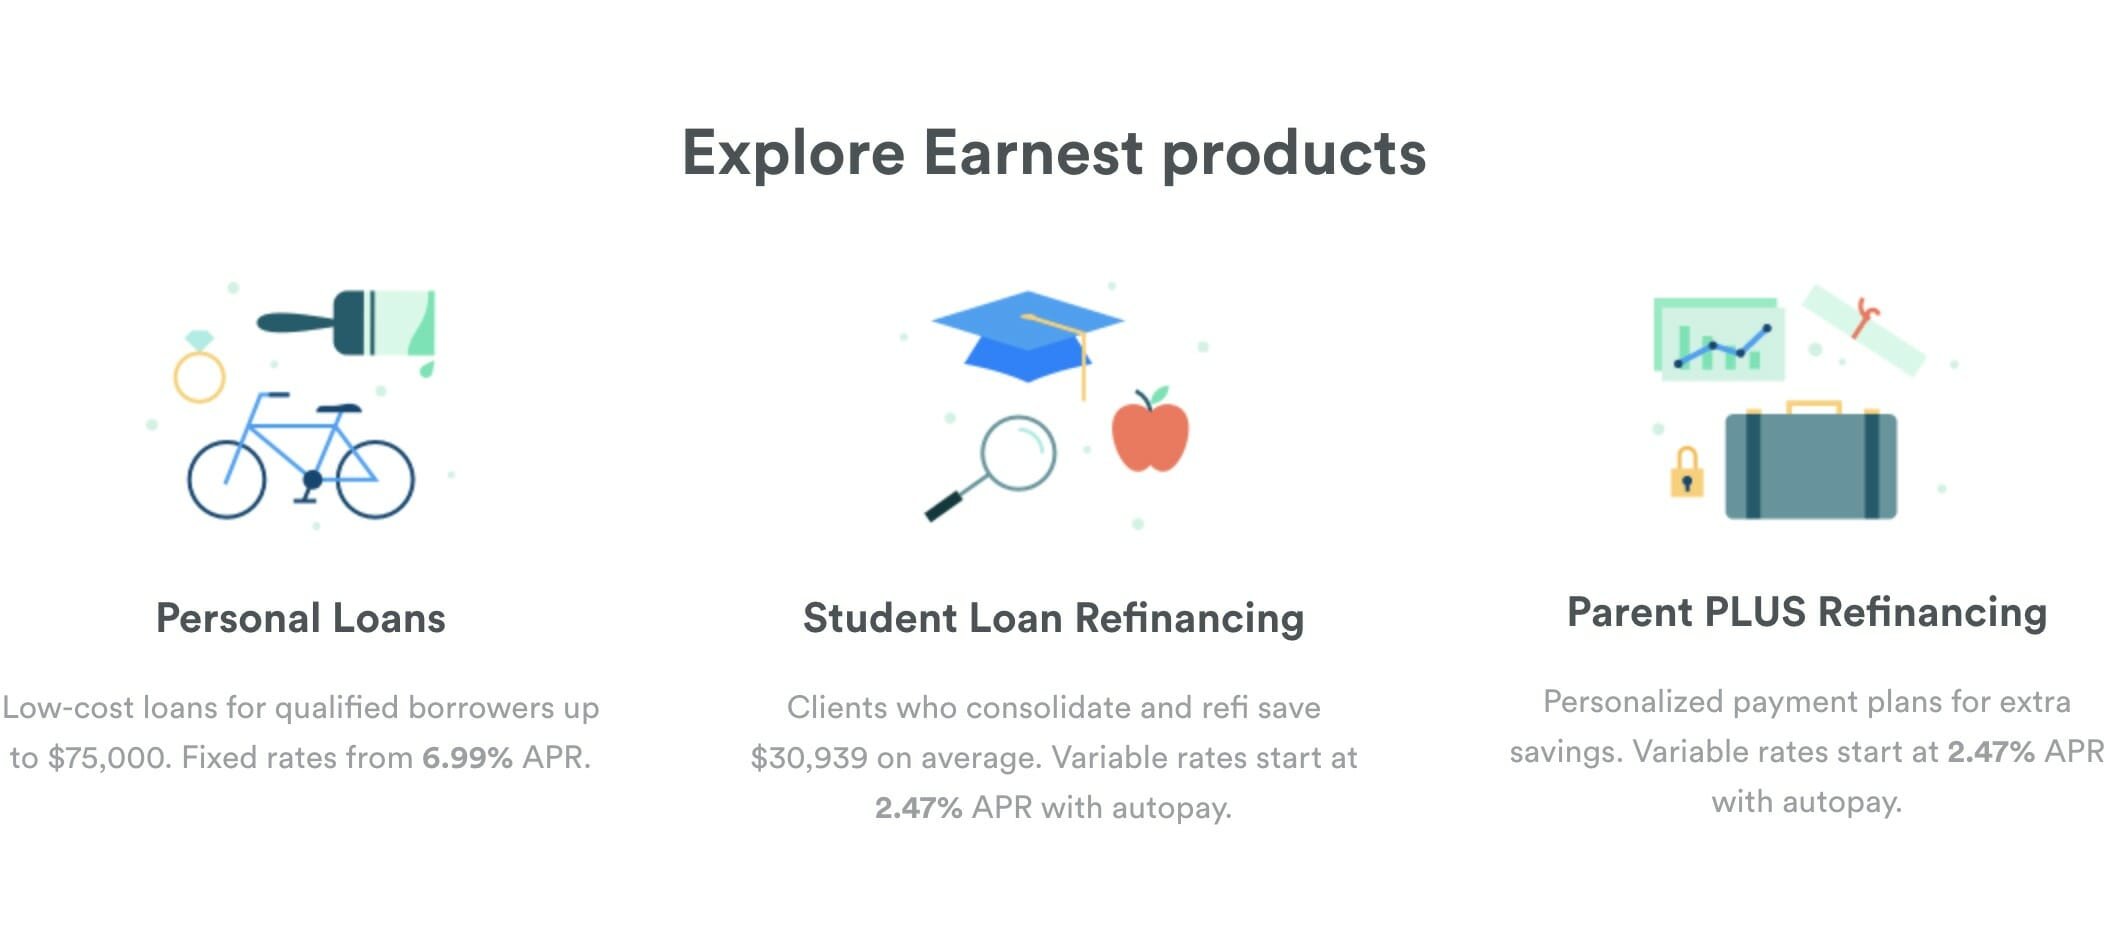 Explore Earnest products: Personal Loans, Student Loan Refinancing, Parent PLUS Refinancing